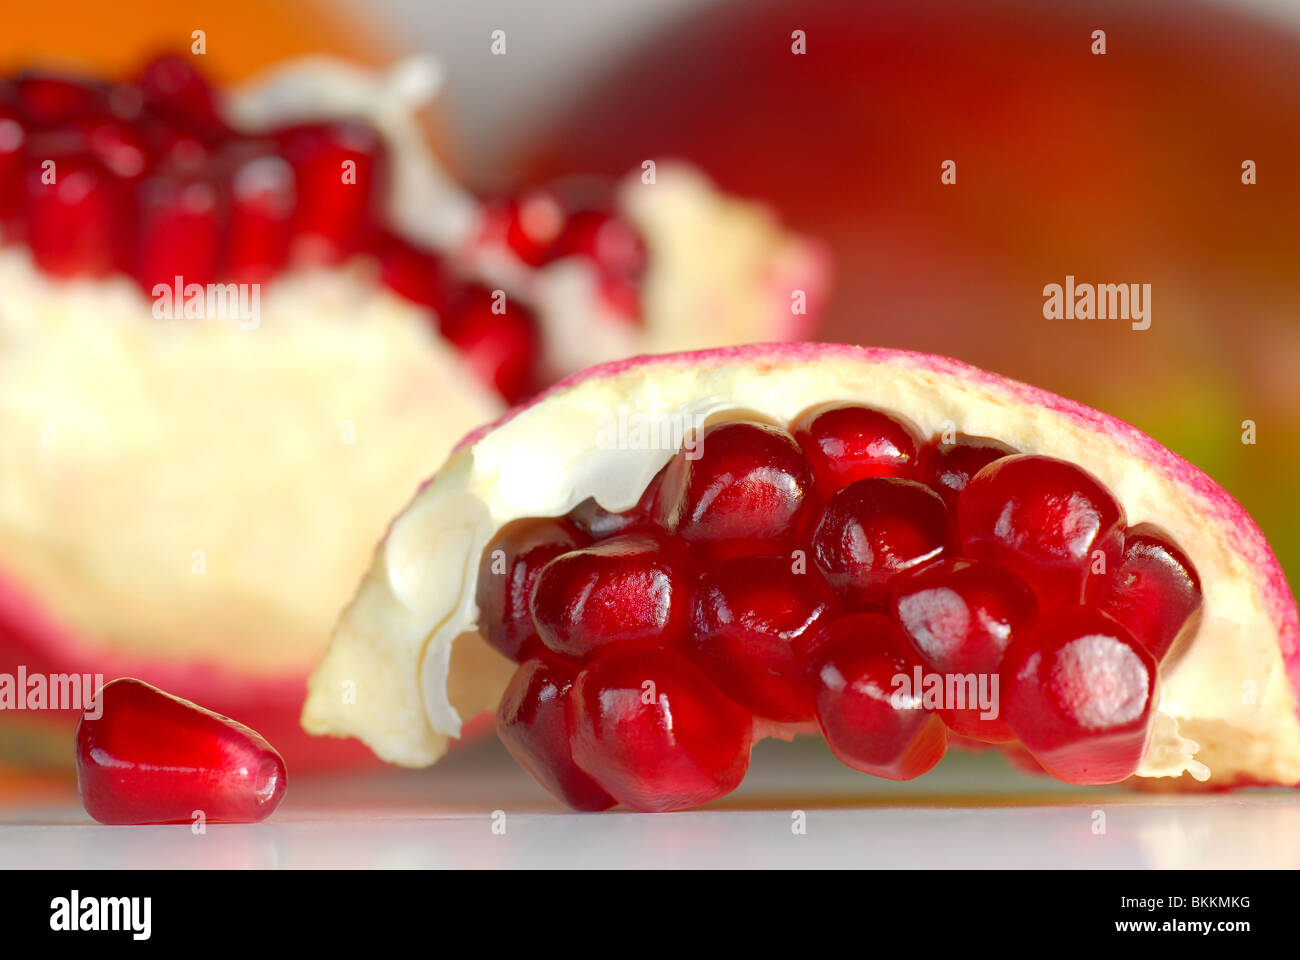 Pomegranate extremely close with soft background - Stock Image